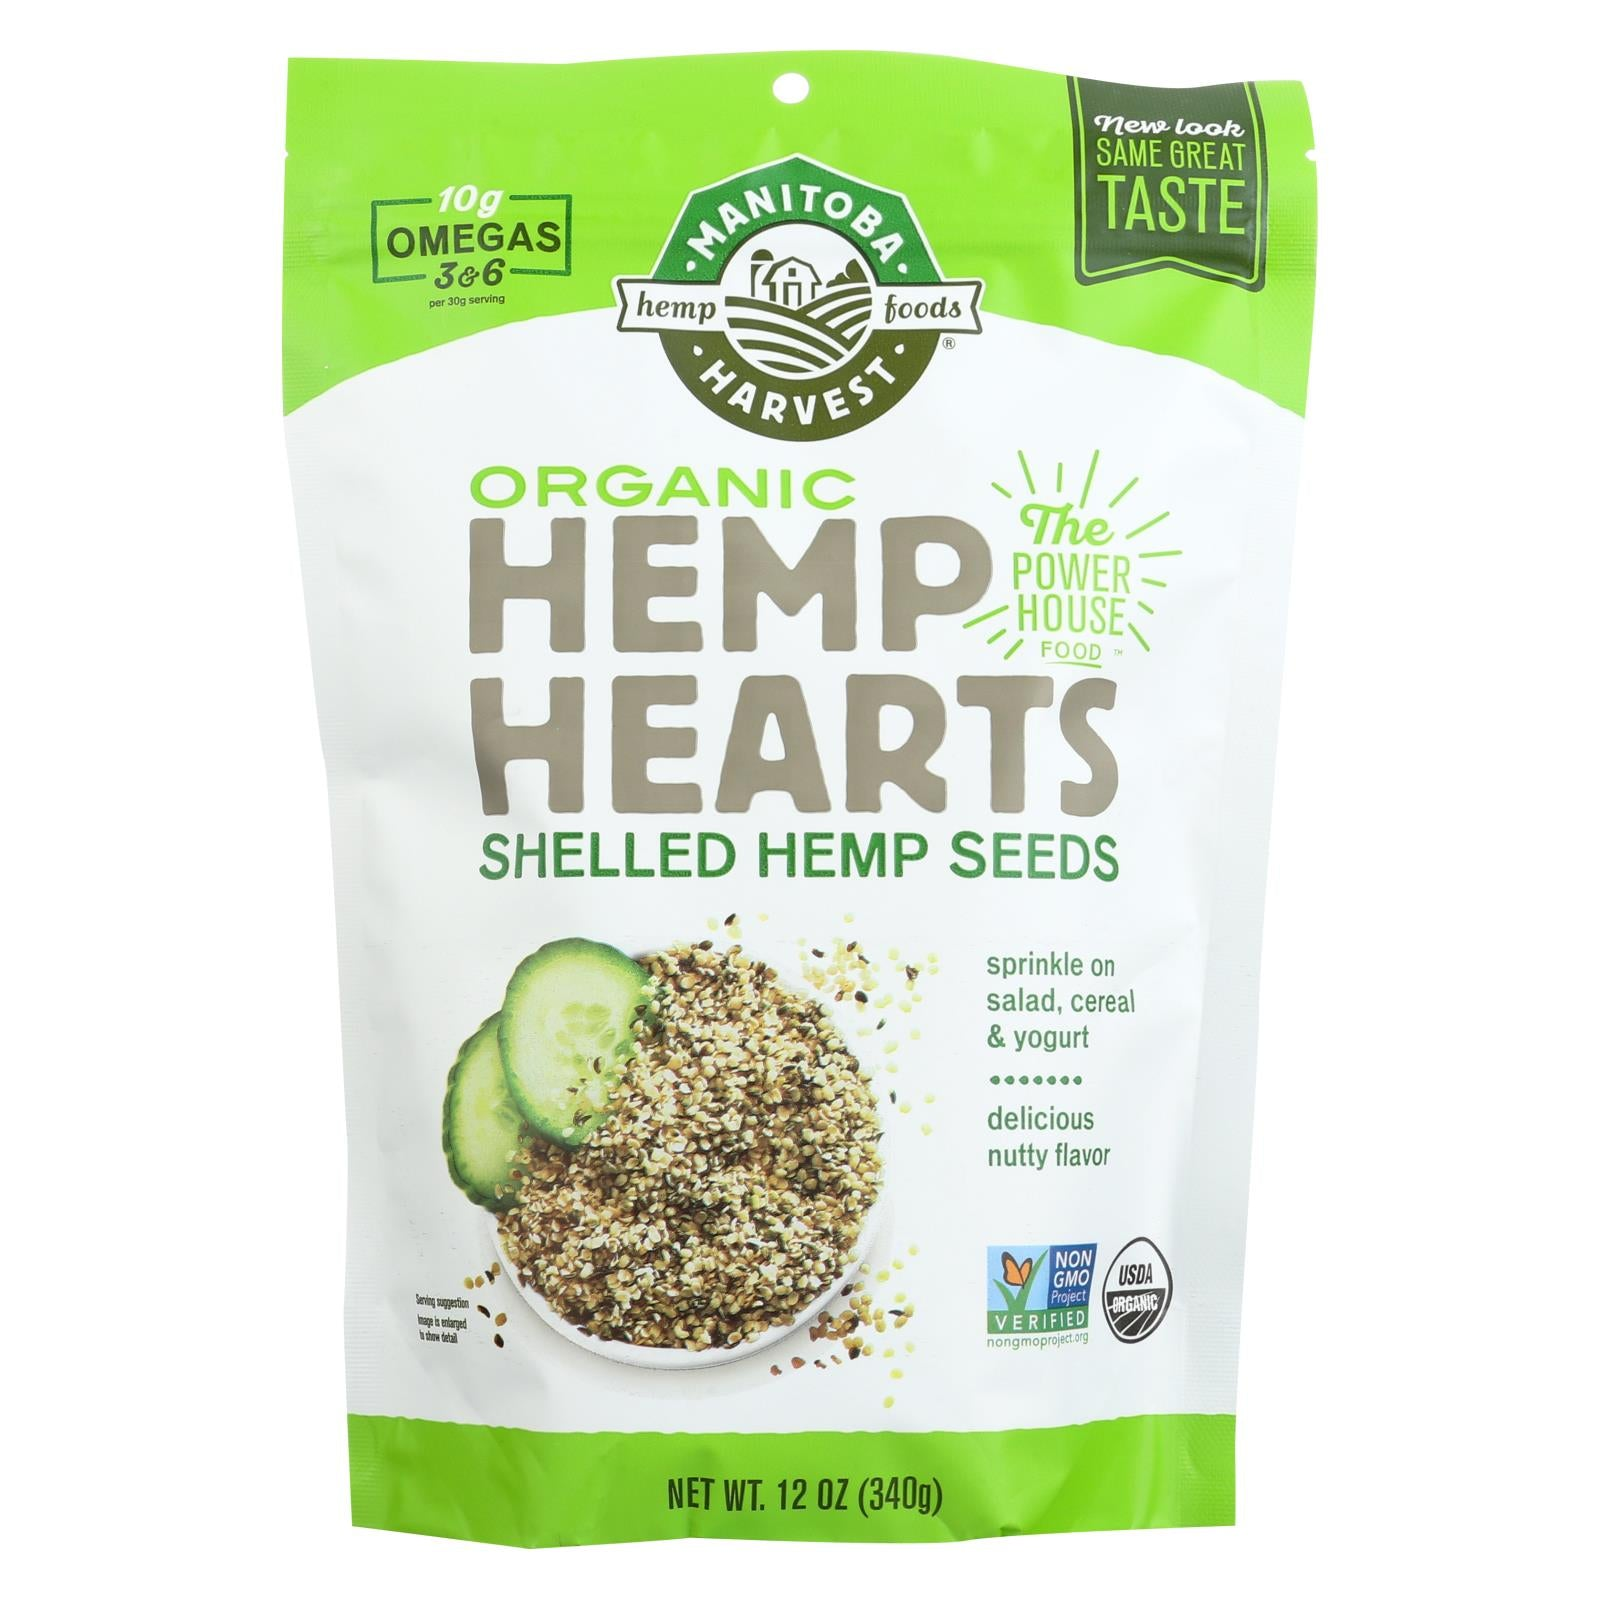 Buy Manitoba Harvest Certified Organic Hemp Hearts Shelled Hemp Seed- Case of 6 - 12 oz - Fibers and Seeds from Veroeco.com